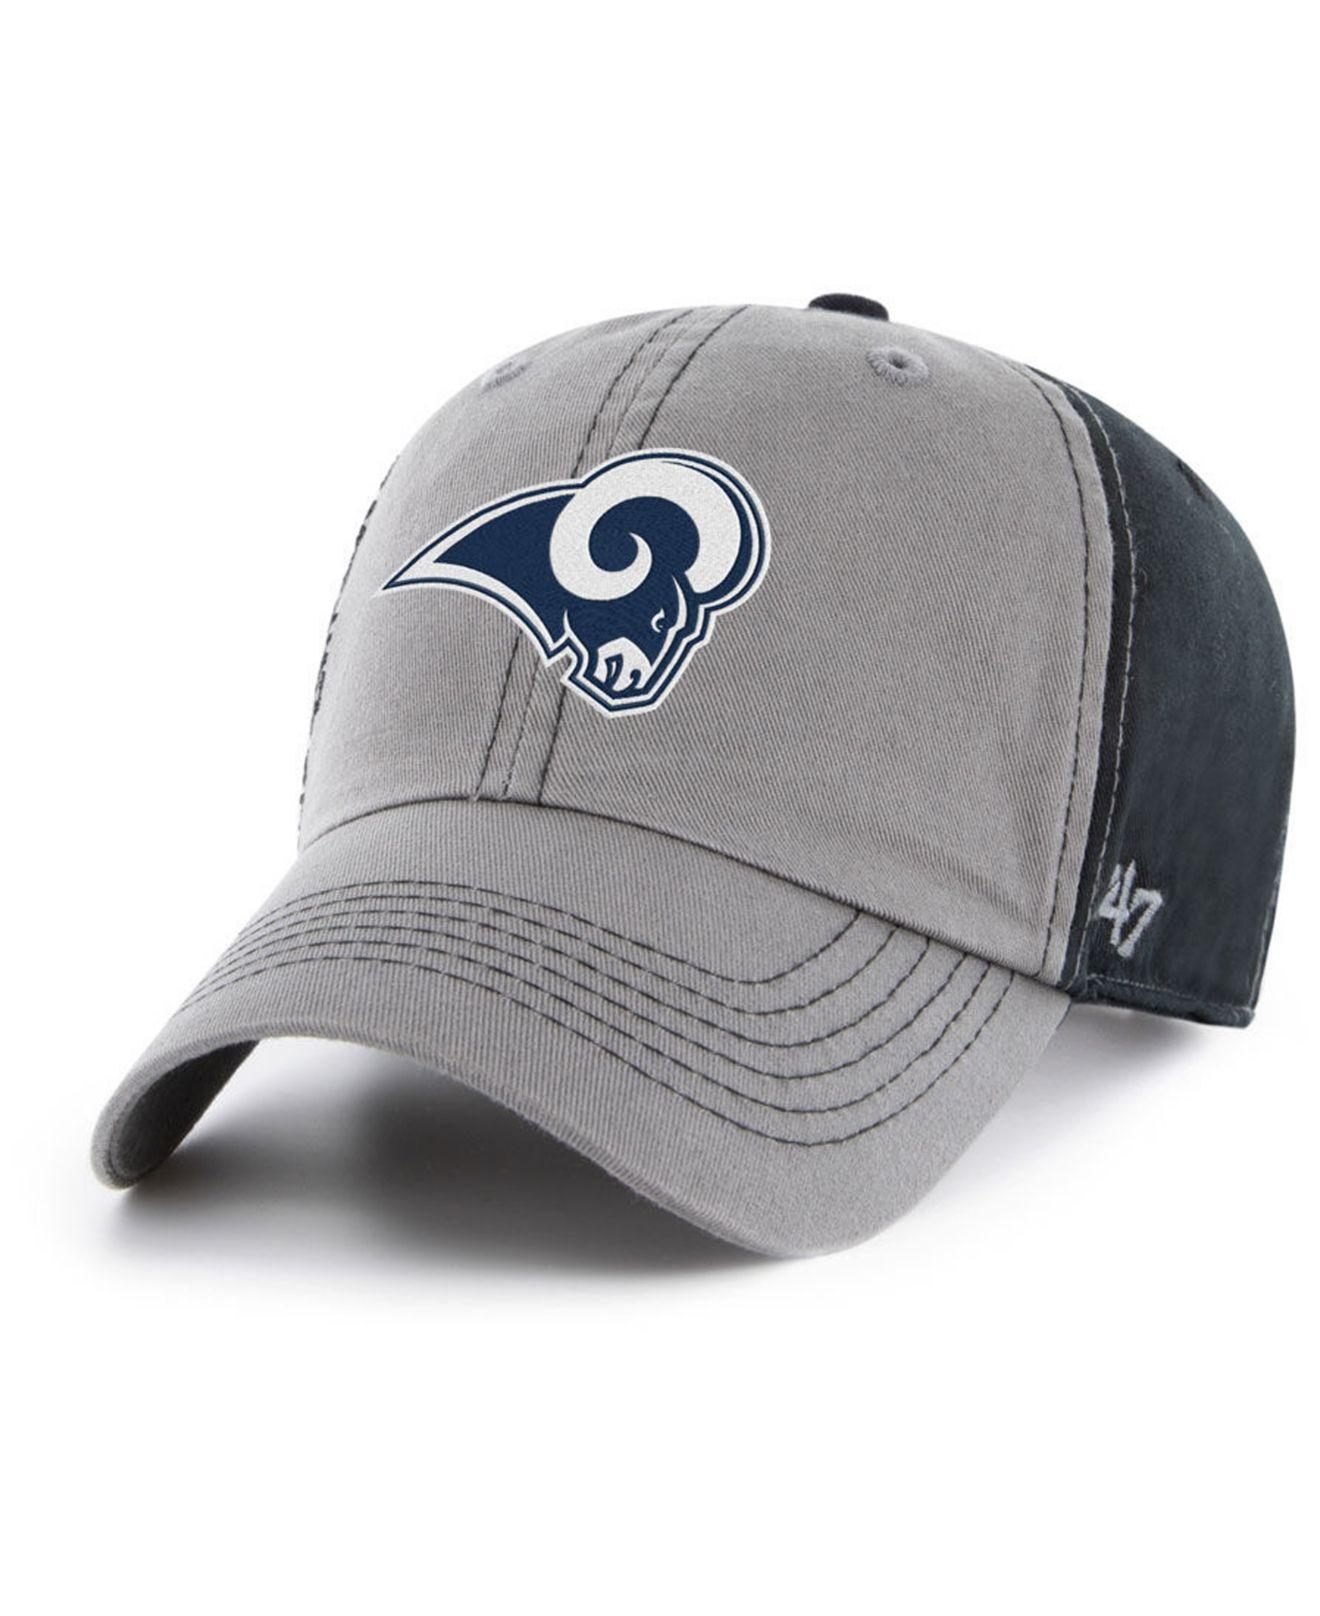 aab19c8f1 Lyst - 47 Brand Los Angeles Rams Super Bowl Liii Climb Clean Up Strapback  Cap in Gray for Men